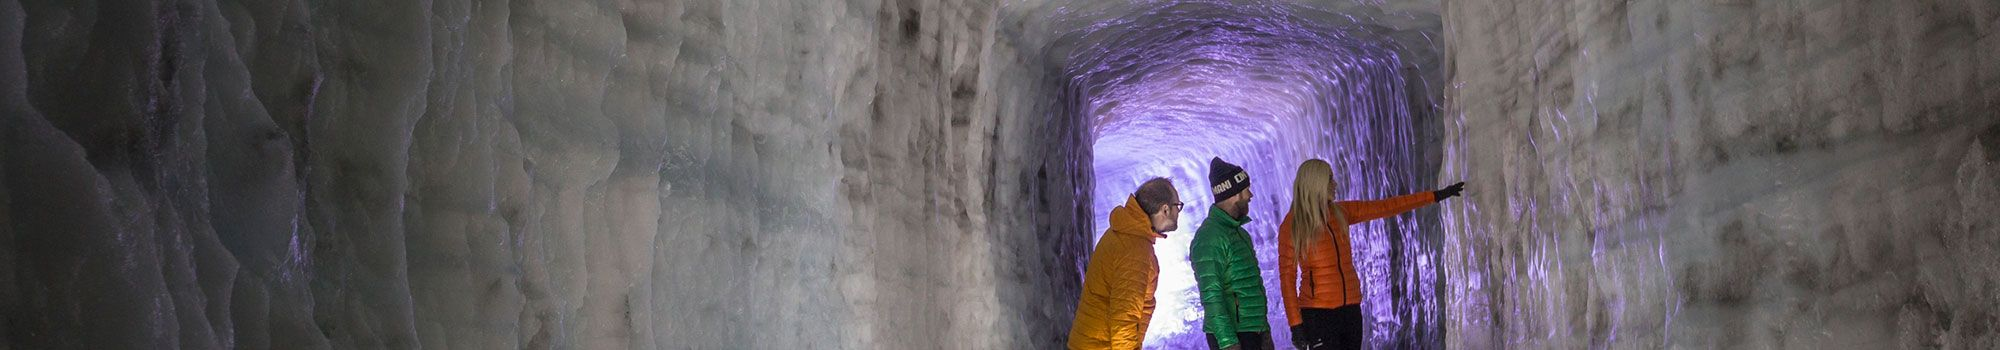 Man-made Ice Tunnel in Langjökull Glacier